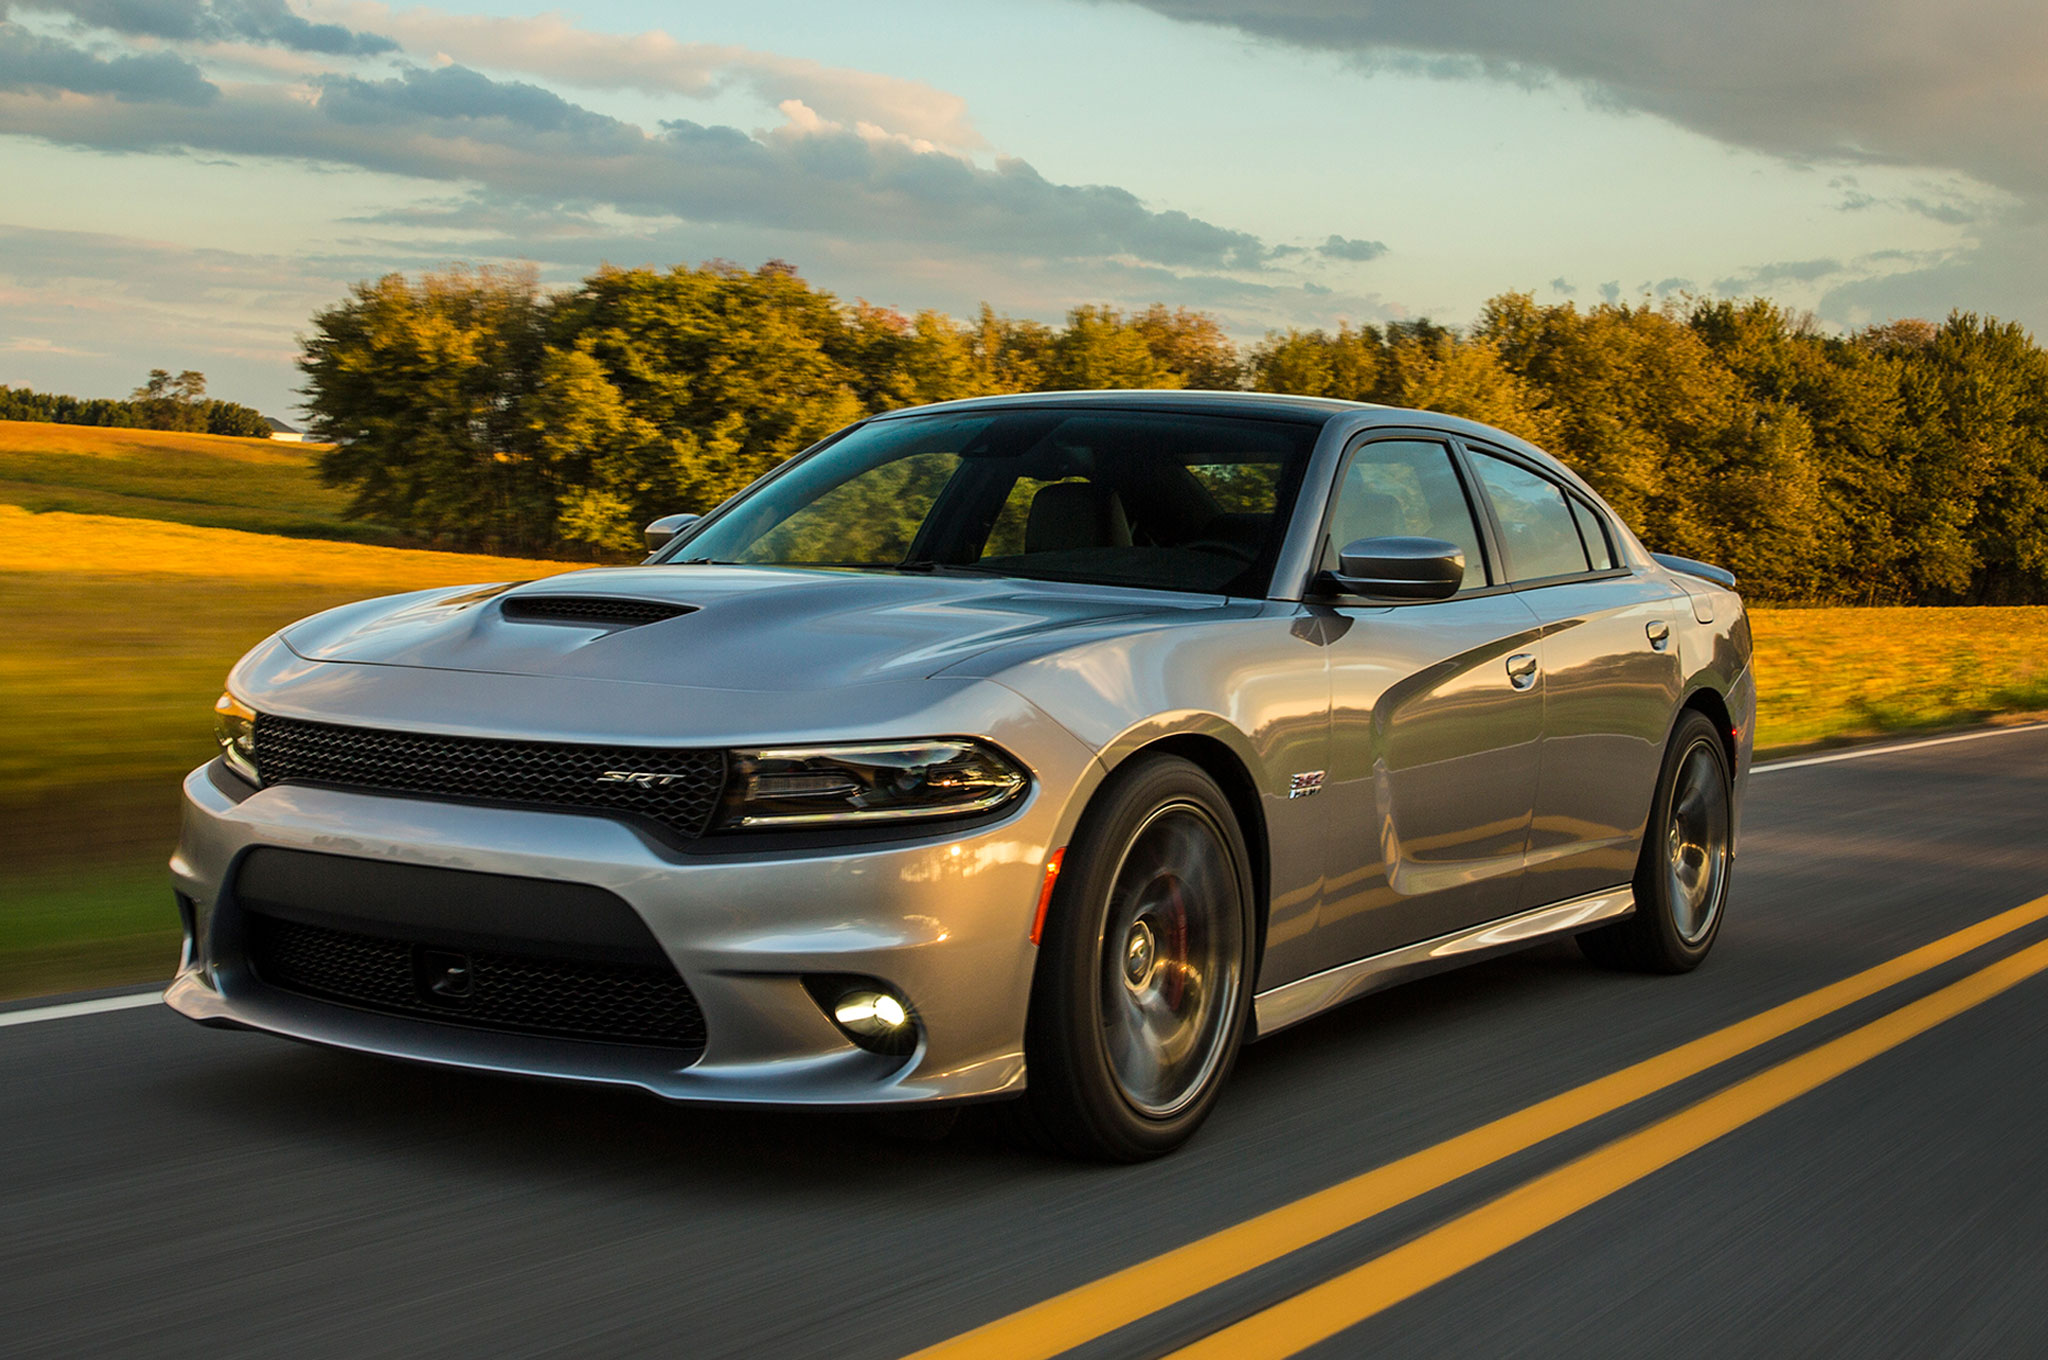 2015 Dodge Charger SRT 392 Front Three Quarter View In Motion 2. 13|250.  2015 Dodge Charger ...